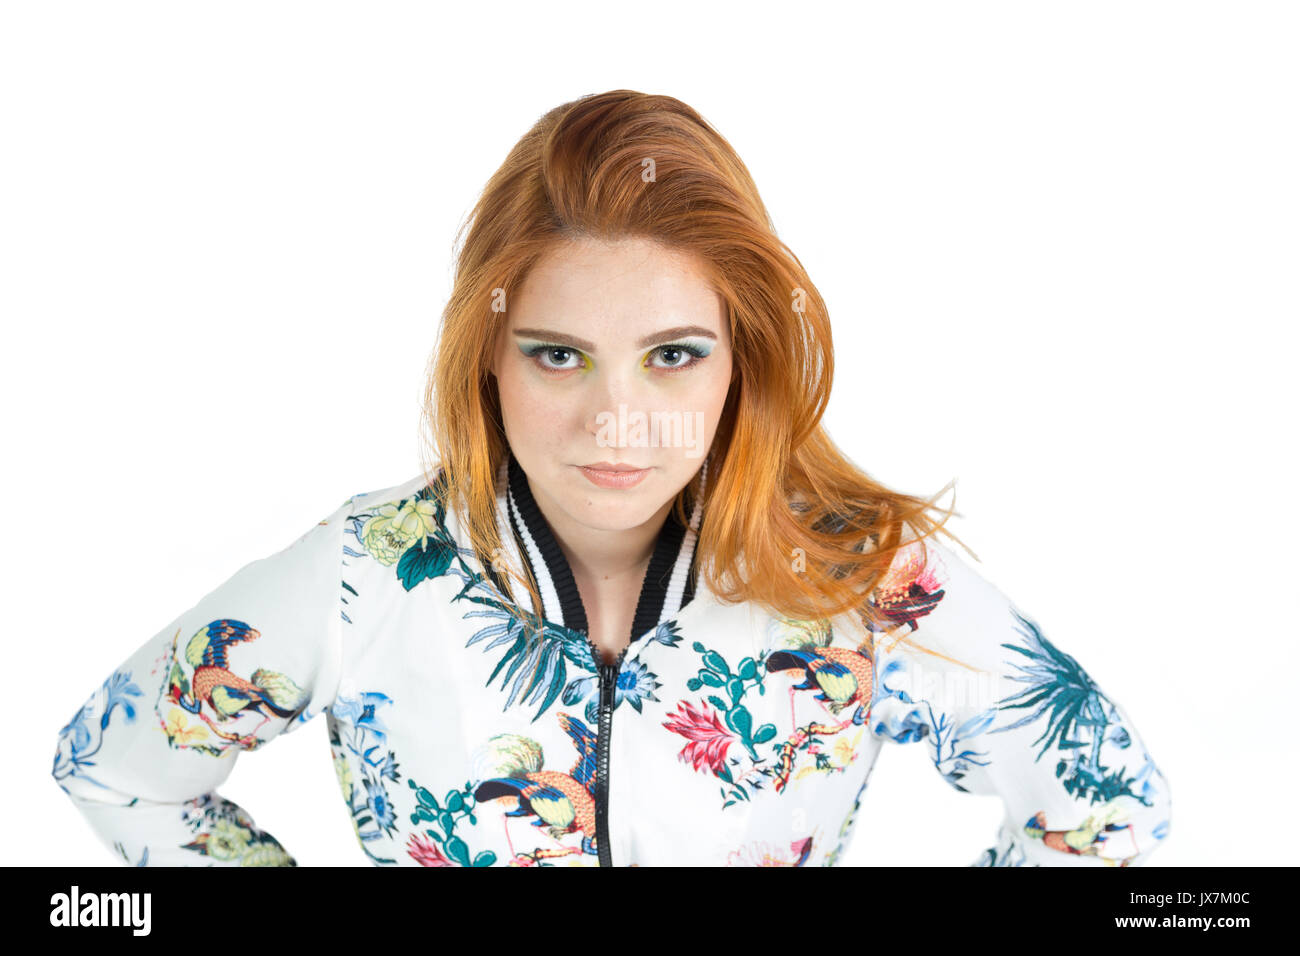 Young woman looks seriously and with defiant look. Redhead girl wears a jacket with floral patterns. Summer and tropical. White background. - Stock Image